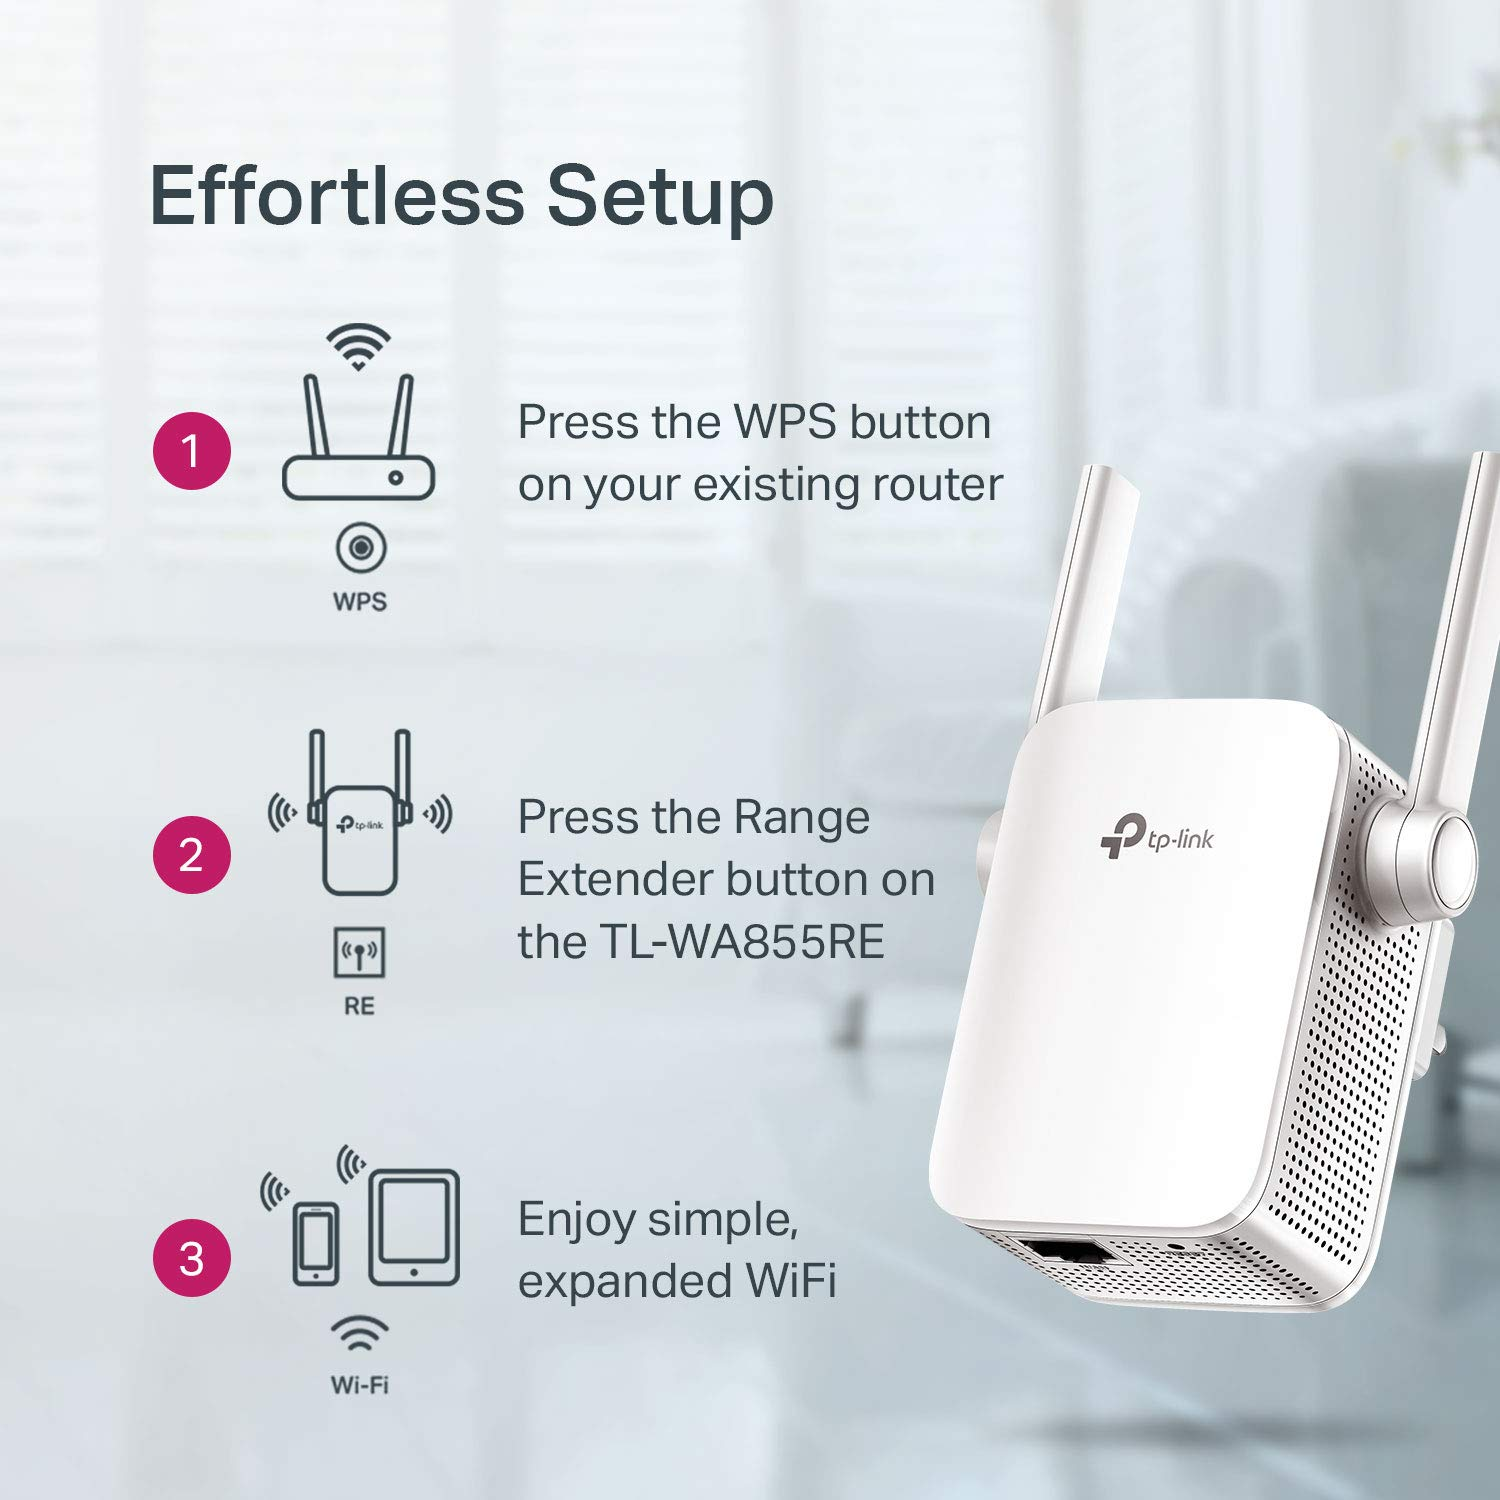 TP-Link | N300 WiFi Range Extender | Up to 300Mbps | WiFi Extender,  Repeater, Wifi Signal Booster, Access Point | Easy Set-Up | External  Antennas &